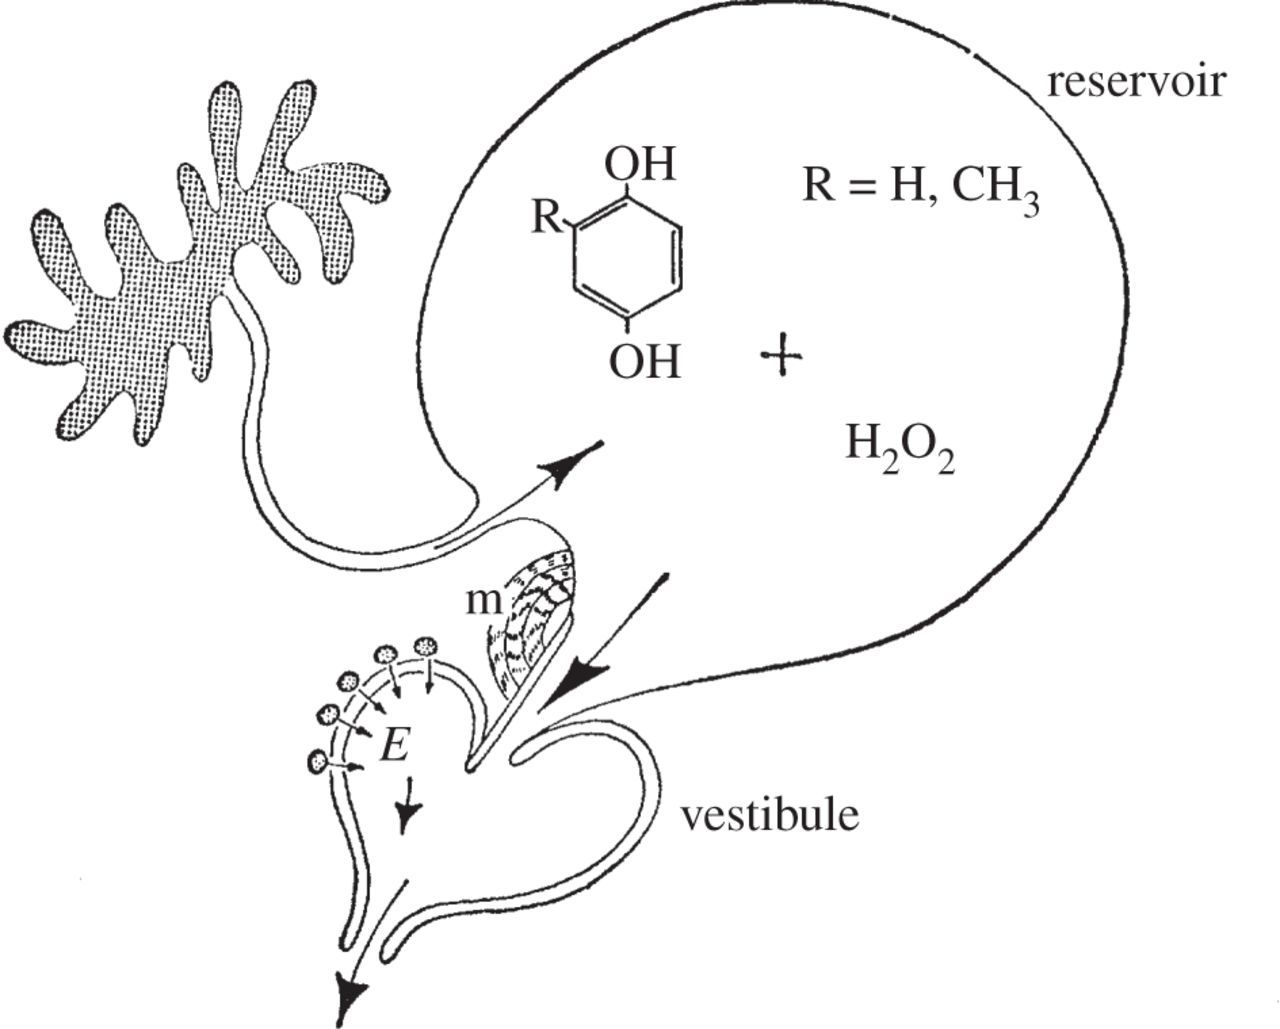 A Mathematical Model Of The Defence Mechanism Of Aar R Beetle